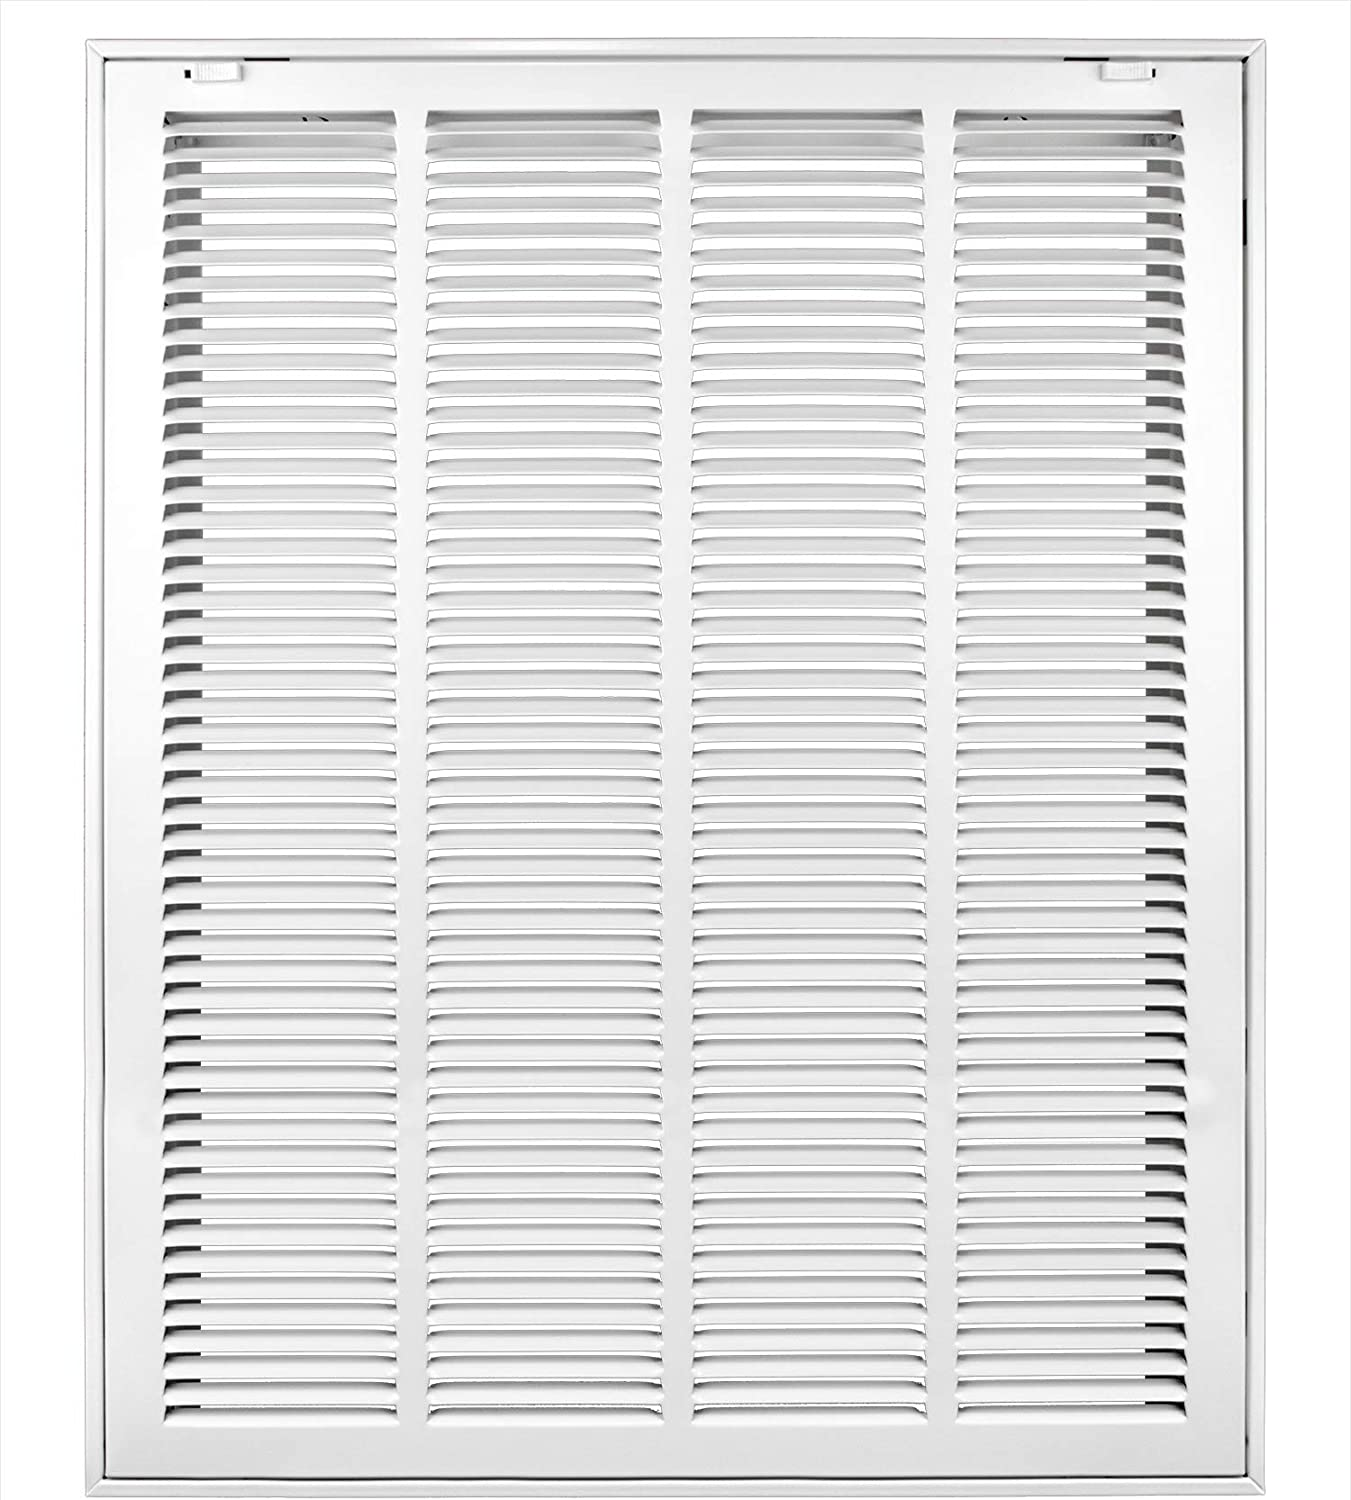 US AIRE 24 x 14 White Steel Return Filter Grille 1410F